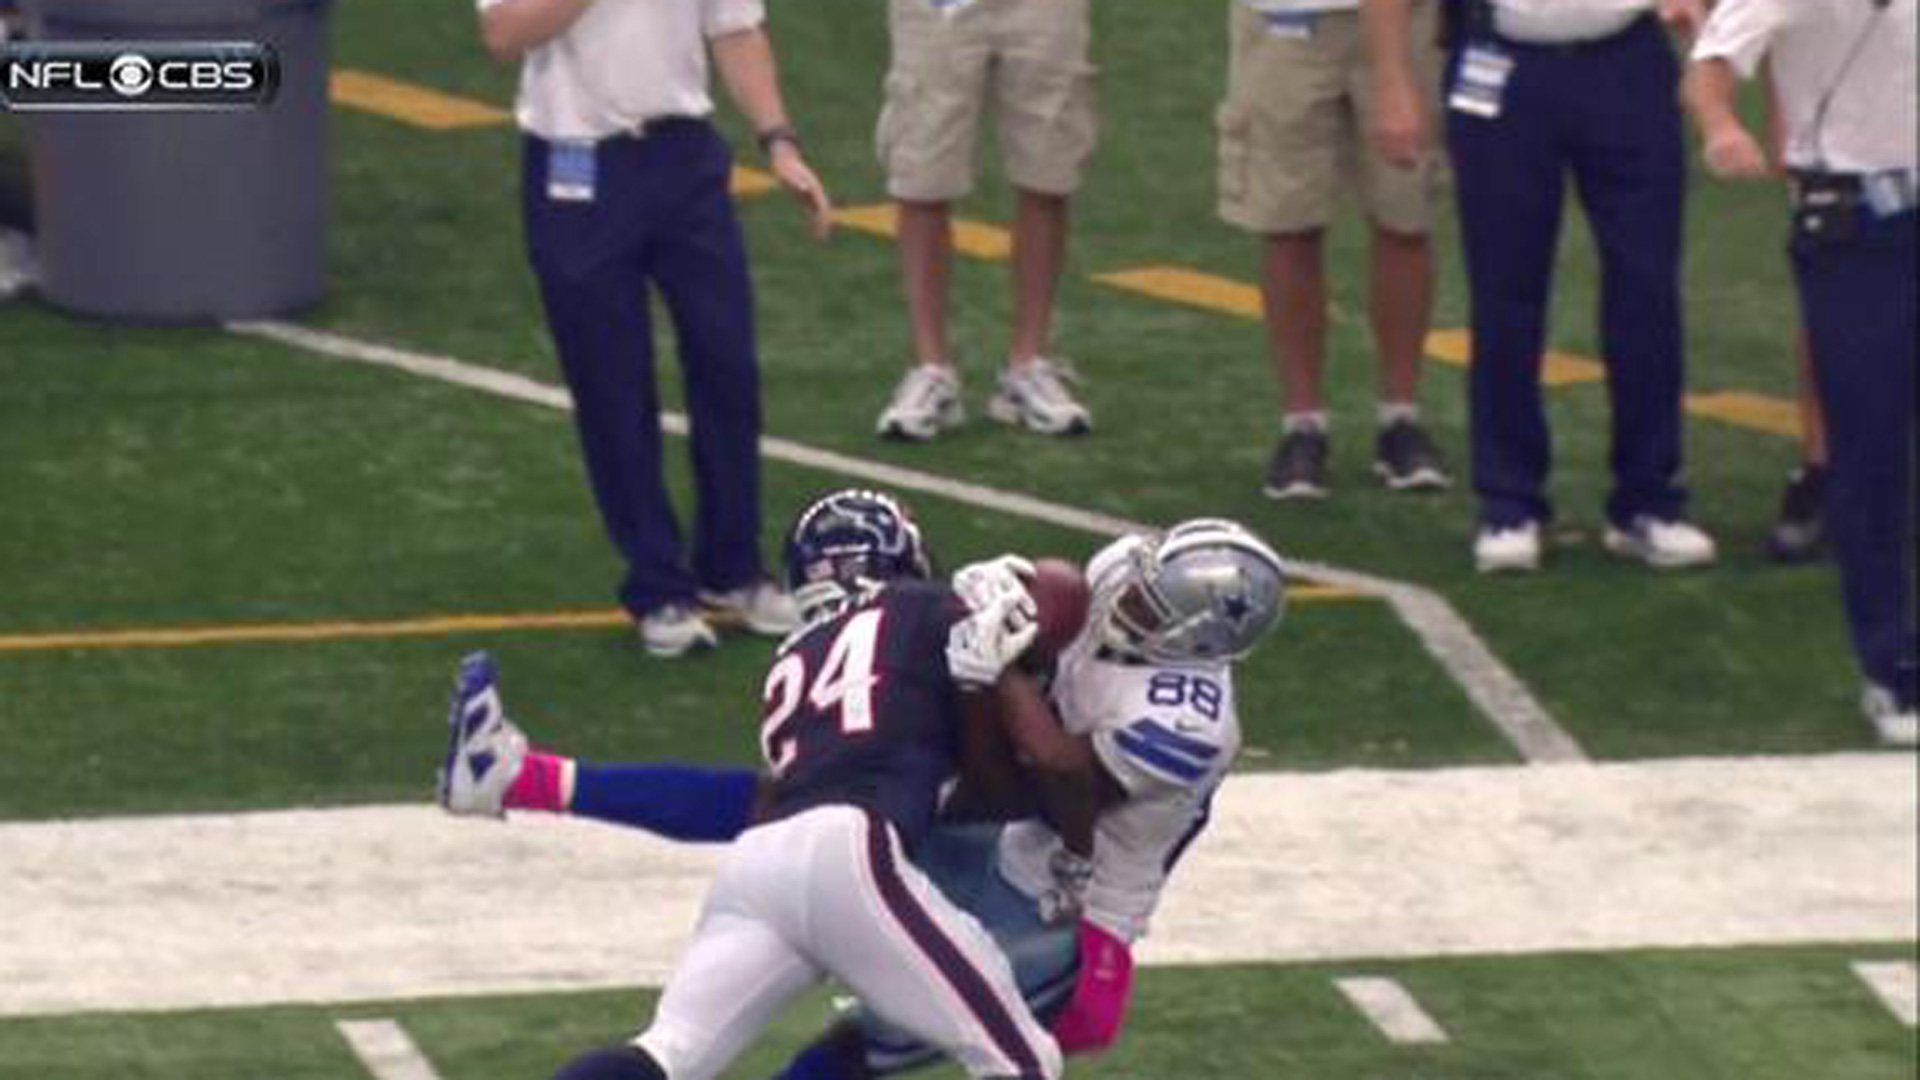 Dez Bryant S Ridiculous Catch Sets Up Game Winning Fg